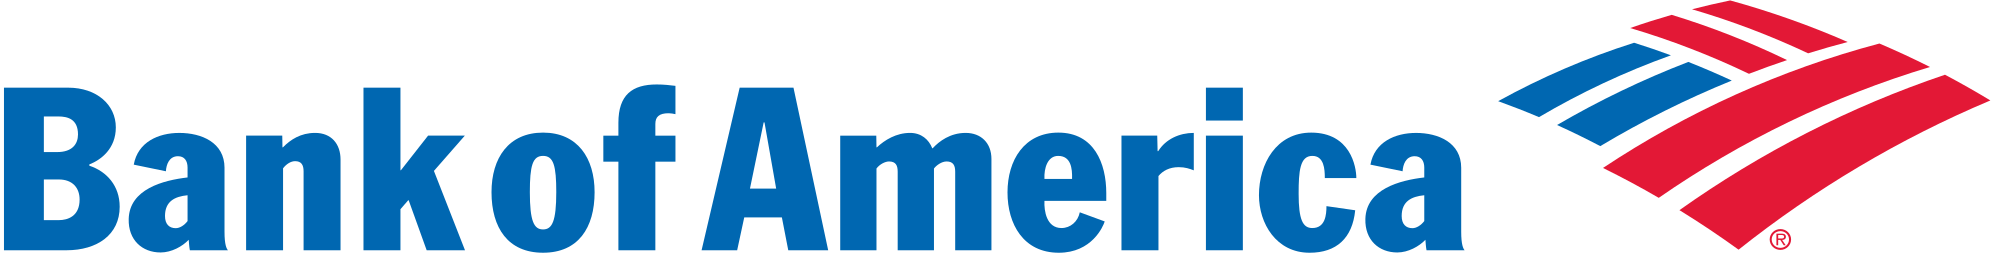 2000px-Bank_of_America_logo.png